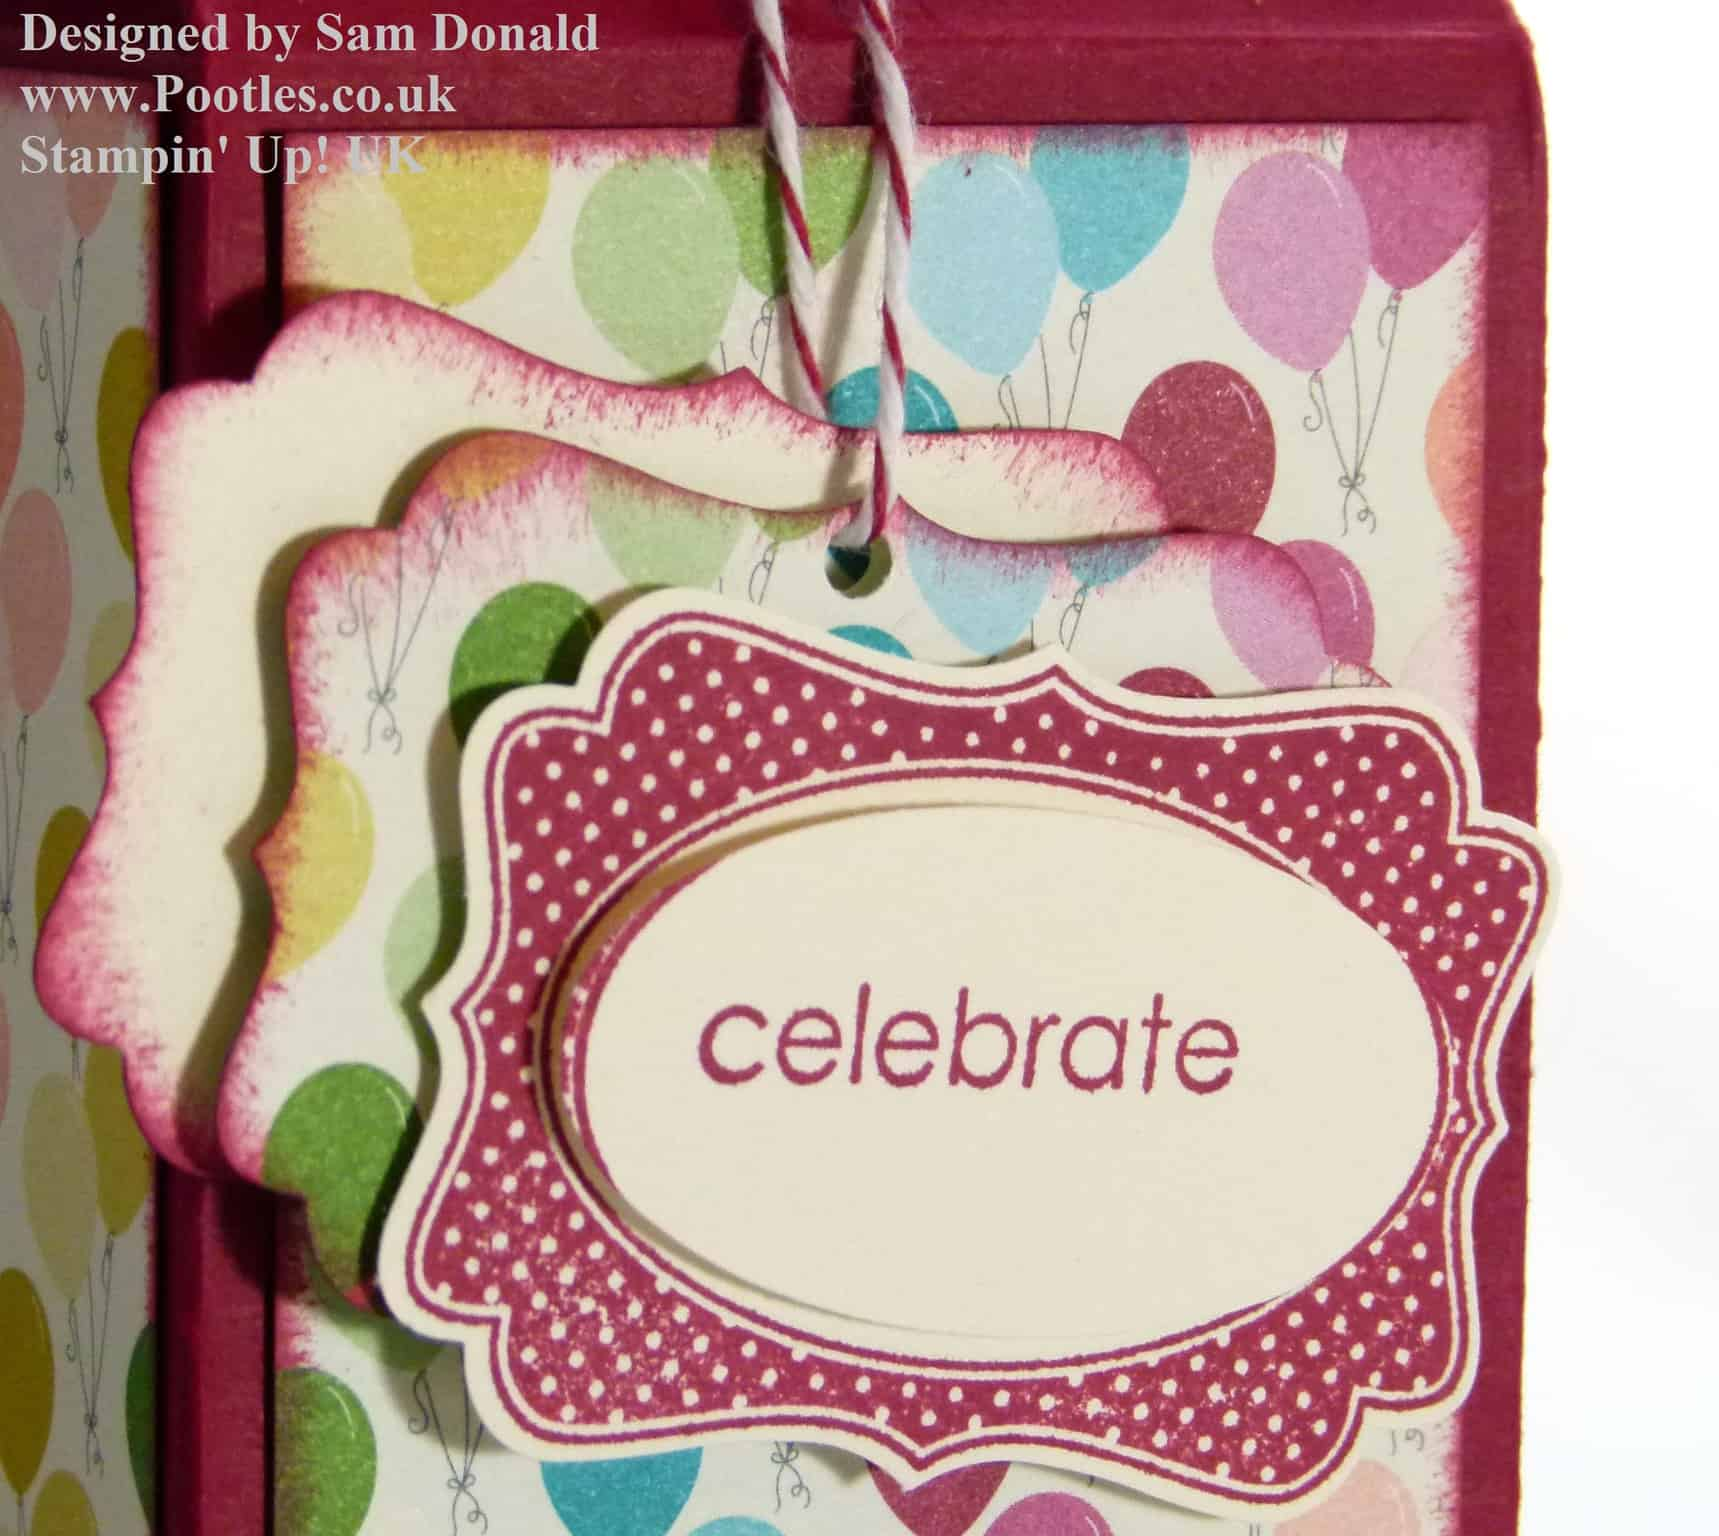 Stampin Up UK Champagne Box 2